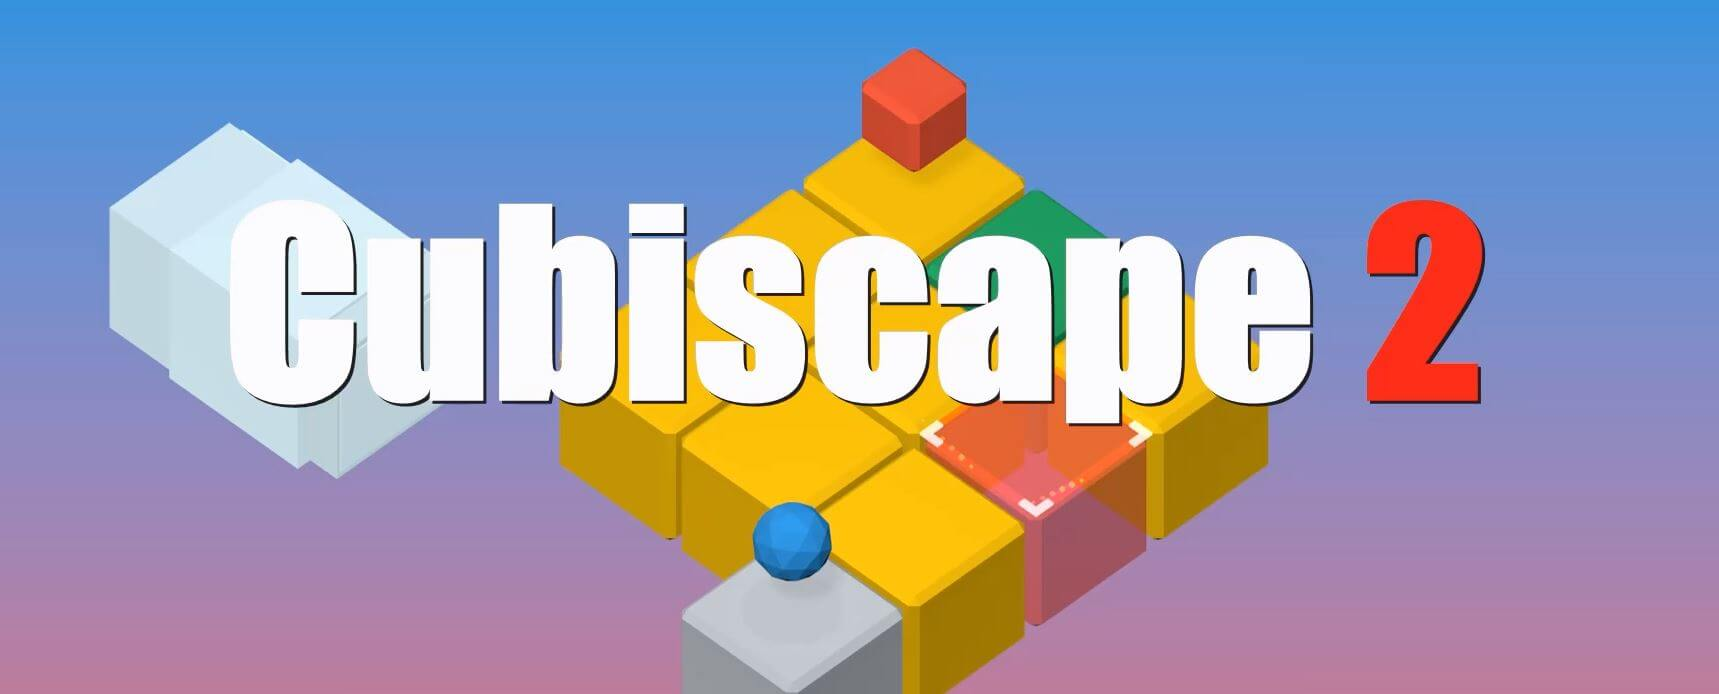 Cubispace 2 Puzzle Game Test